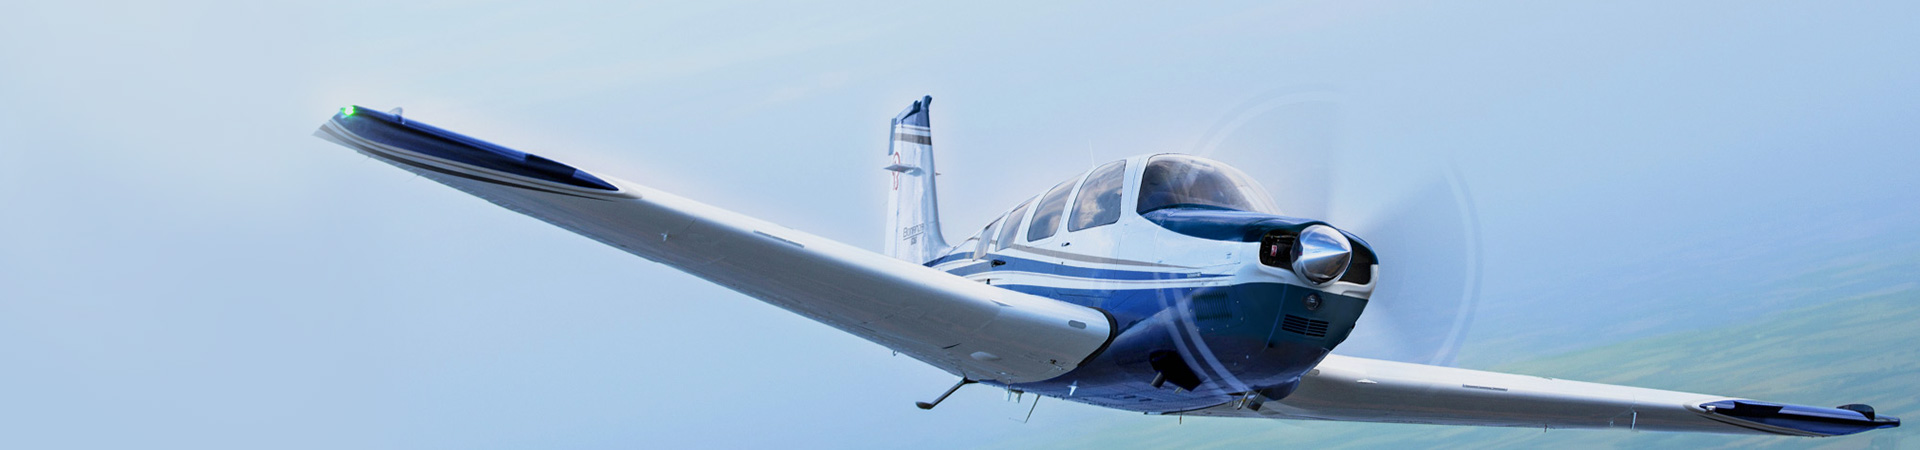 Starr Luxury Jets Small Prop Aircraft Hire